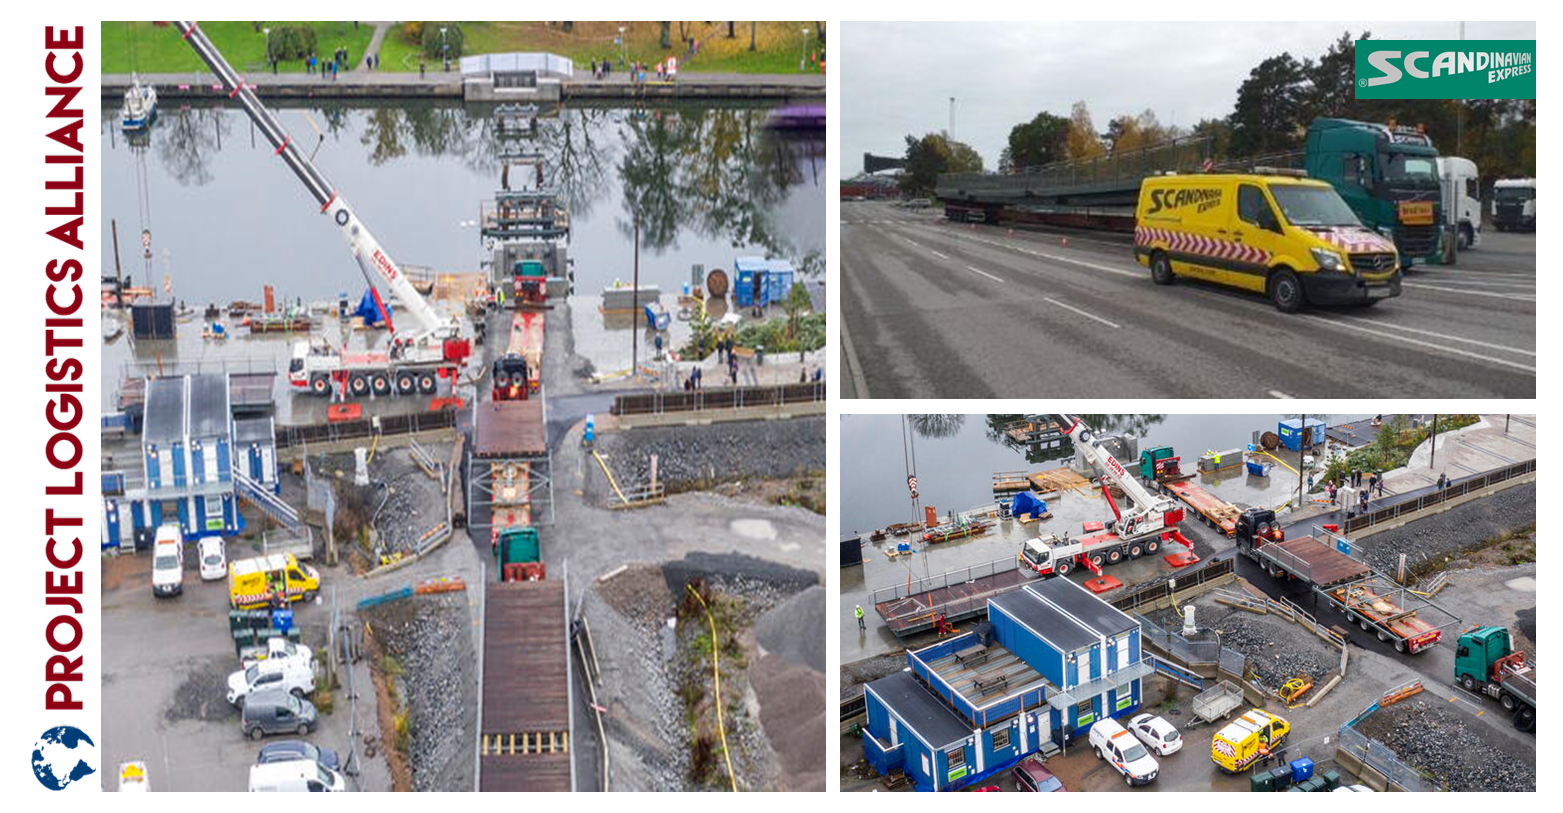 Scandinavian Express Delivers Bridge Sections To Norrtälje, Sweden